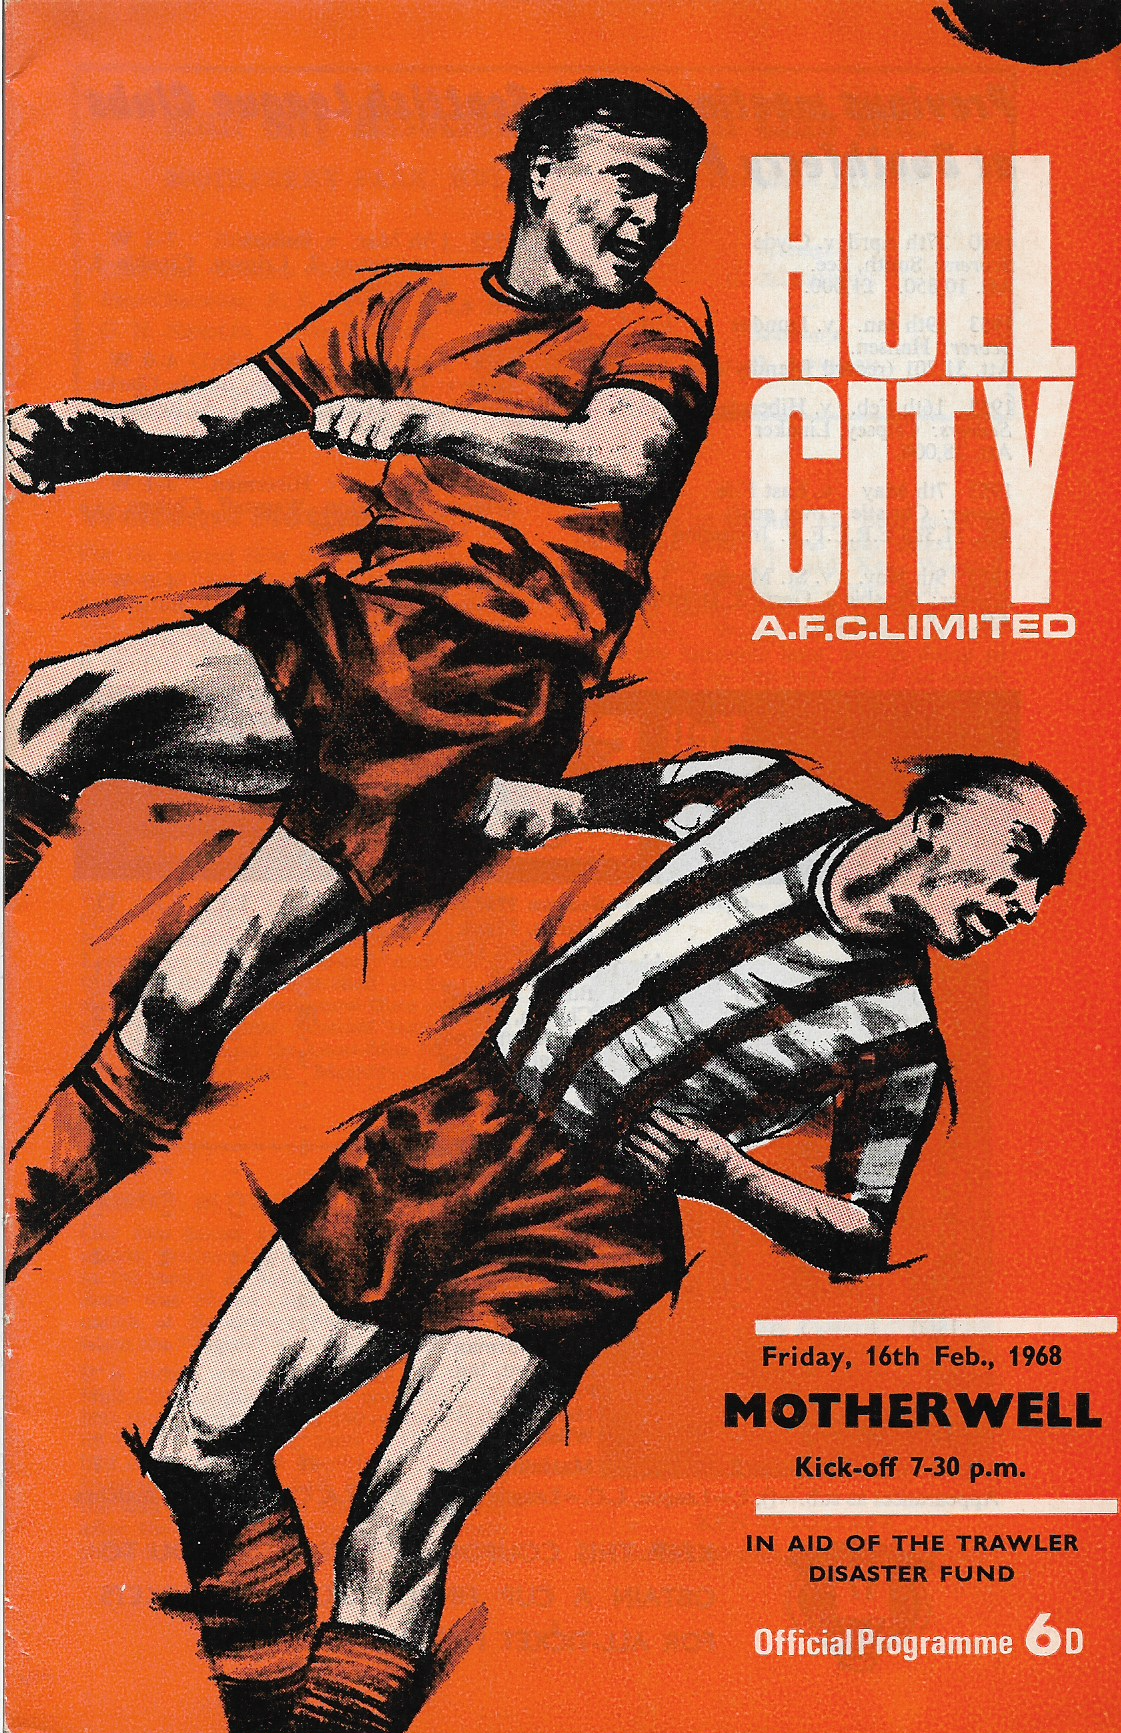 Programme Cover versus Hull City